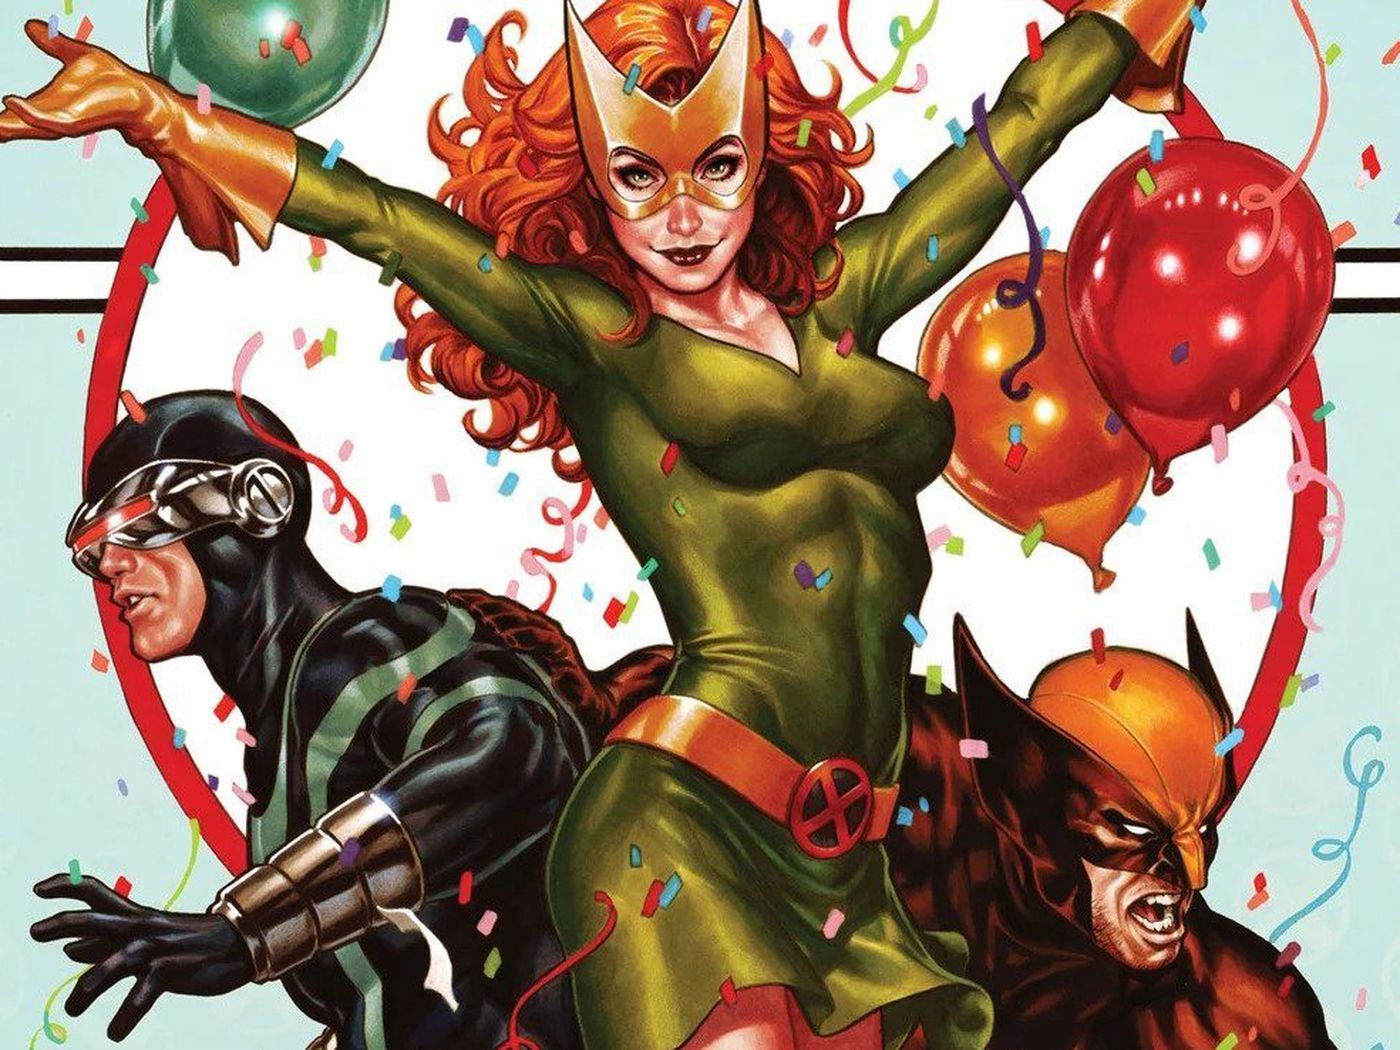 Marvel S New X Men Comic Hints At Wolverine S Polyamorous Love Triangle Polygon